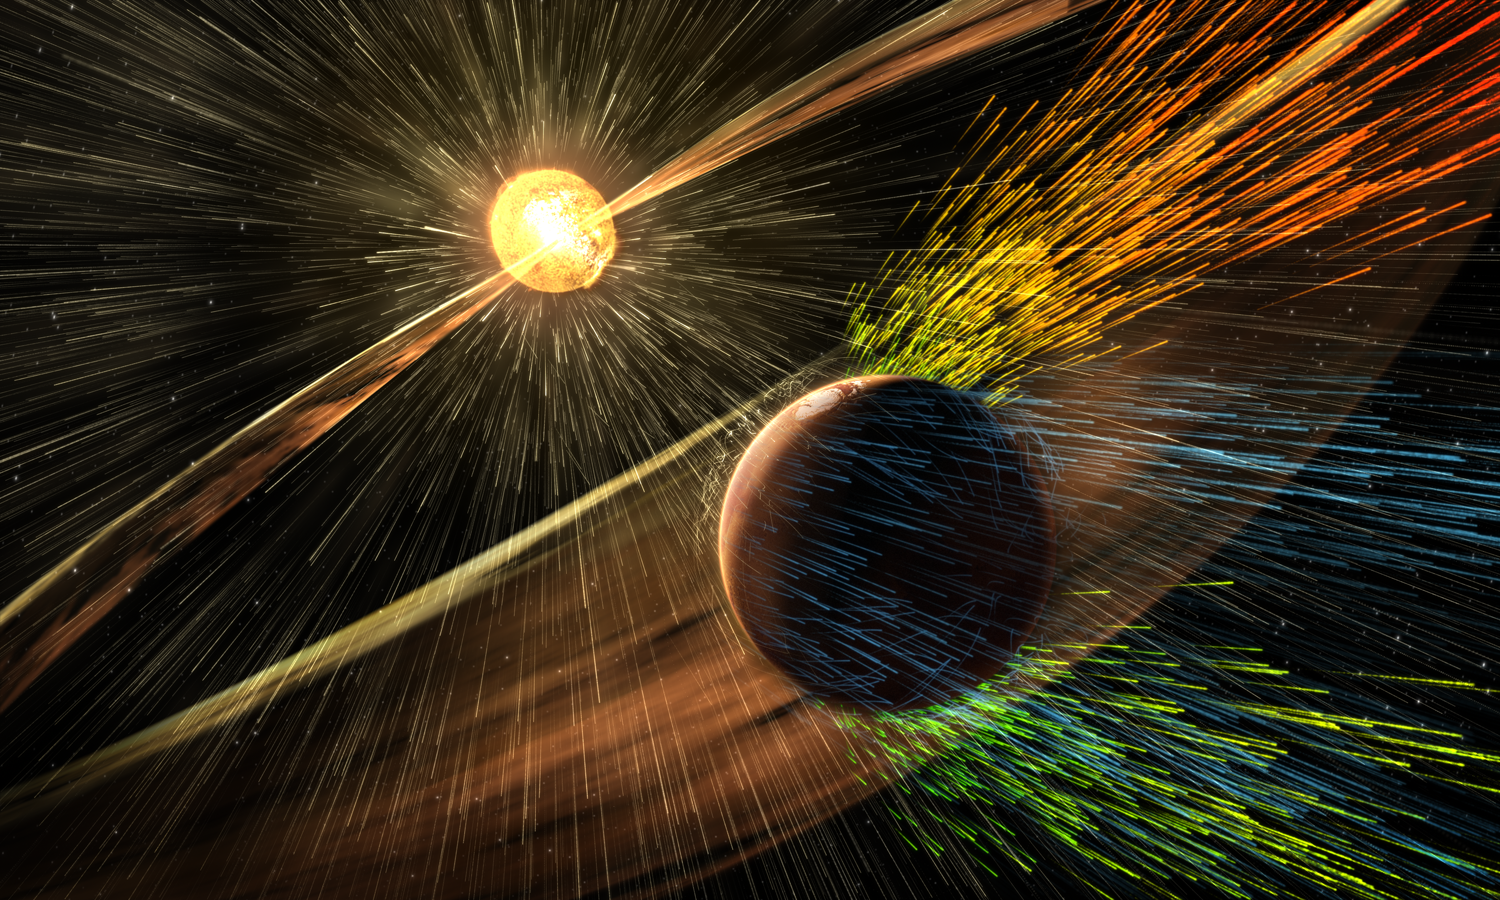 Artist's rendering of solar storm at Mars